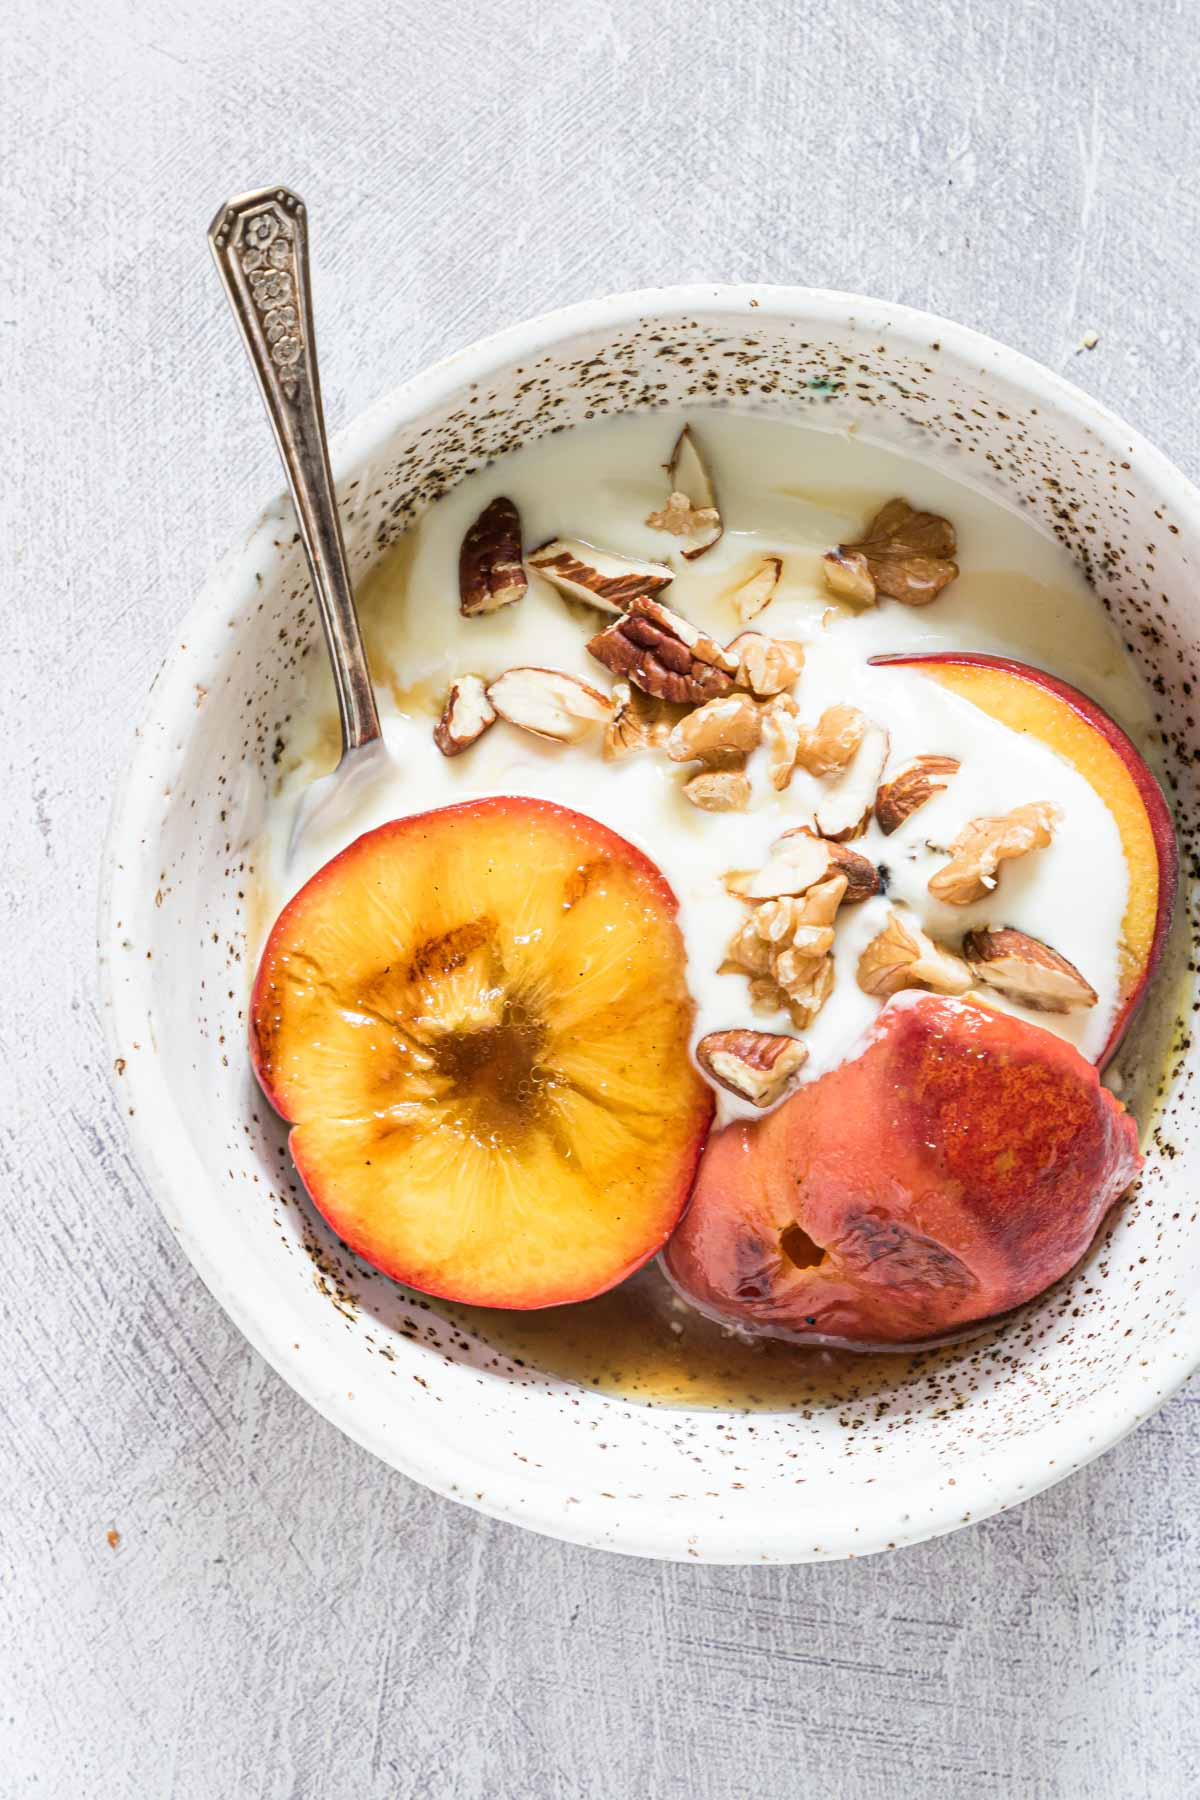 a close up view of one serving of grilled peaches and walnuts with ice cream